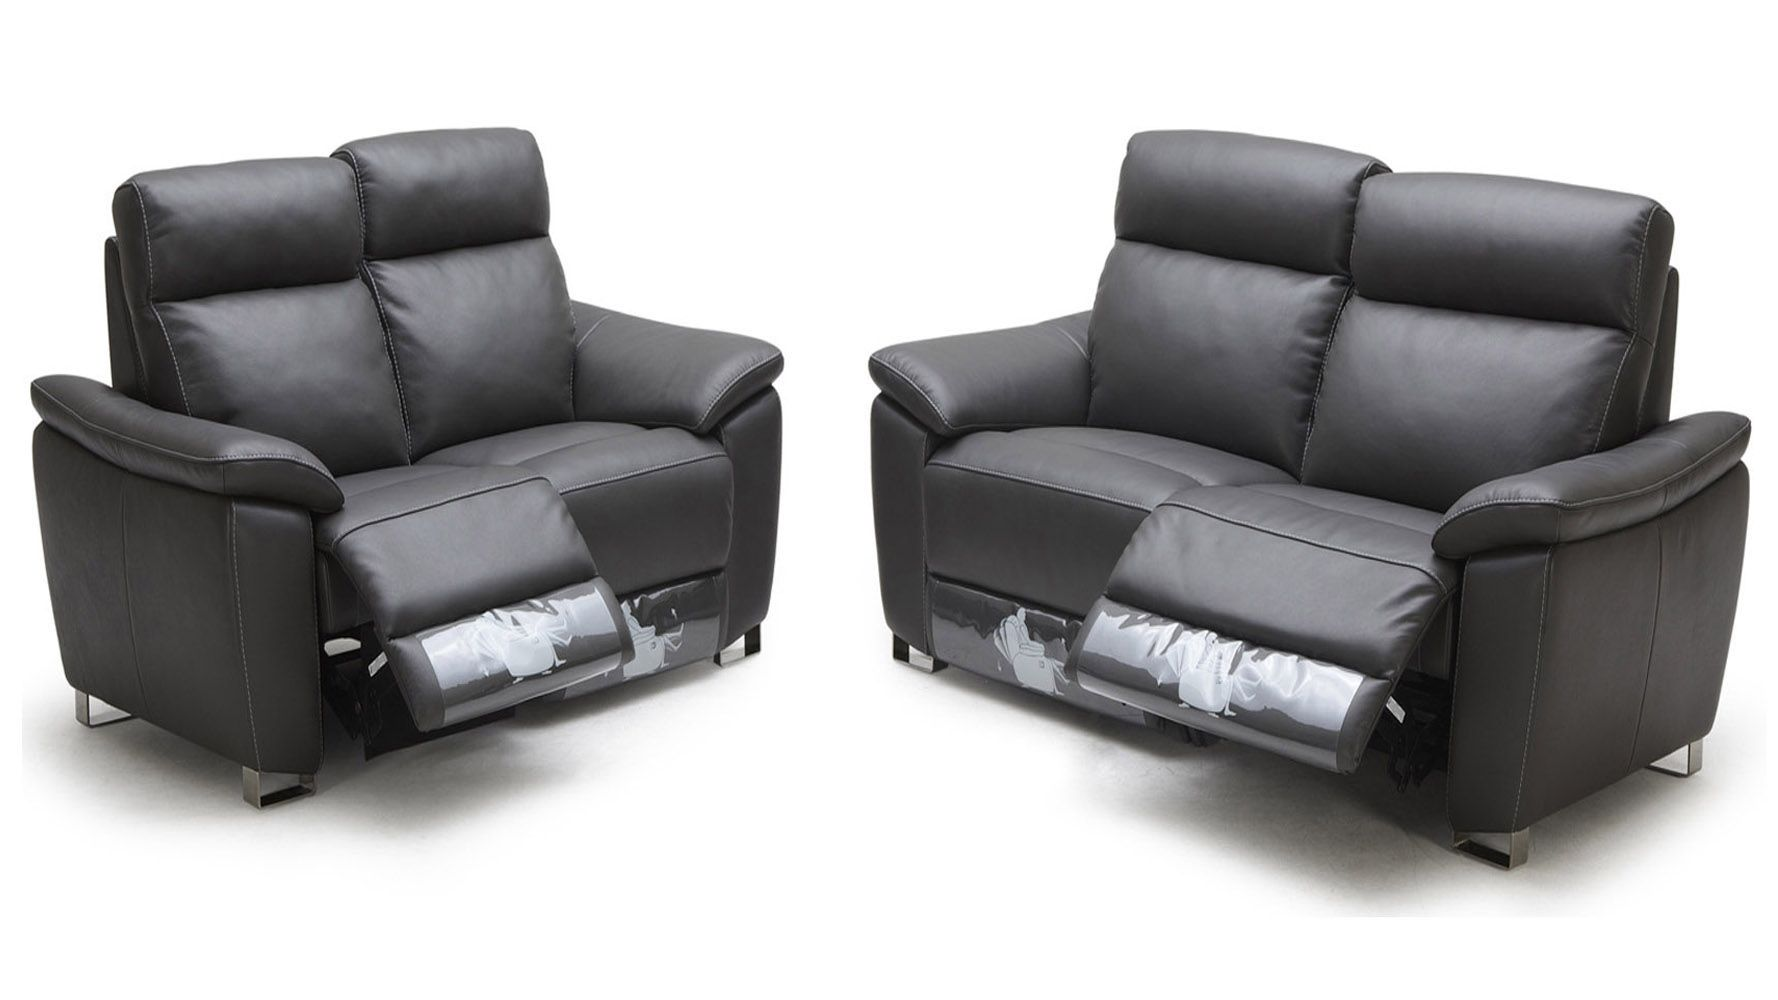 Superbe Nice Two Seat Recliner Couch , New Two Seat Recliner Couch 48 On Sofas And  Couches Set With Two Seat Recliner Couch ...